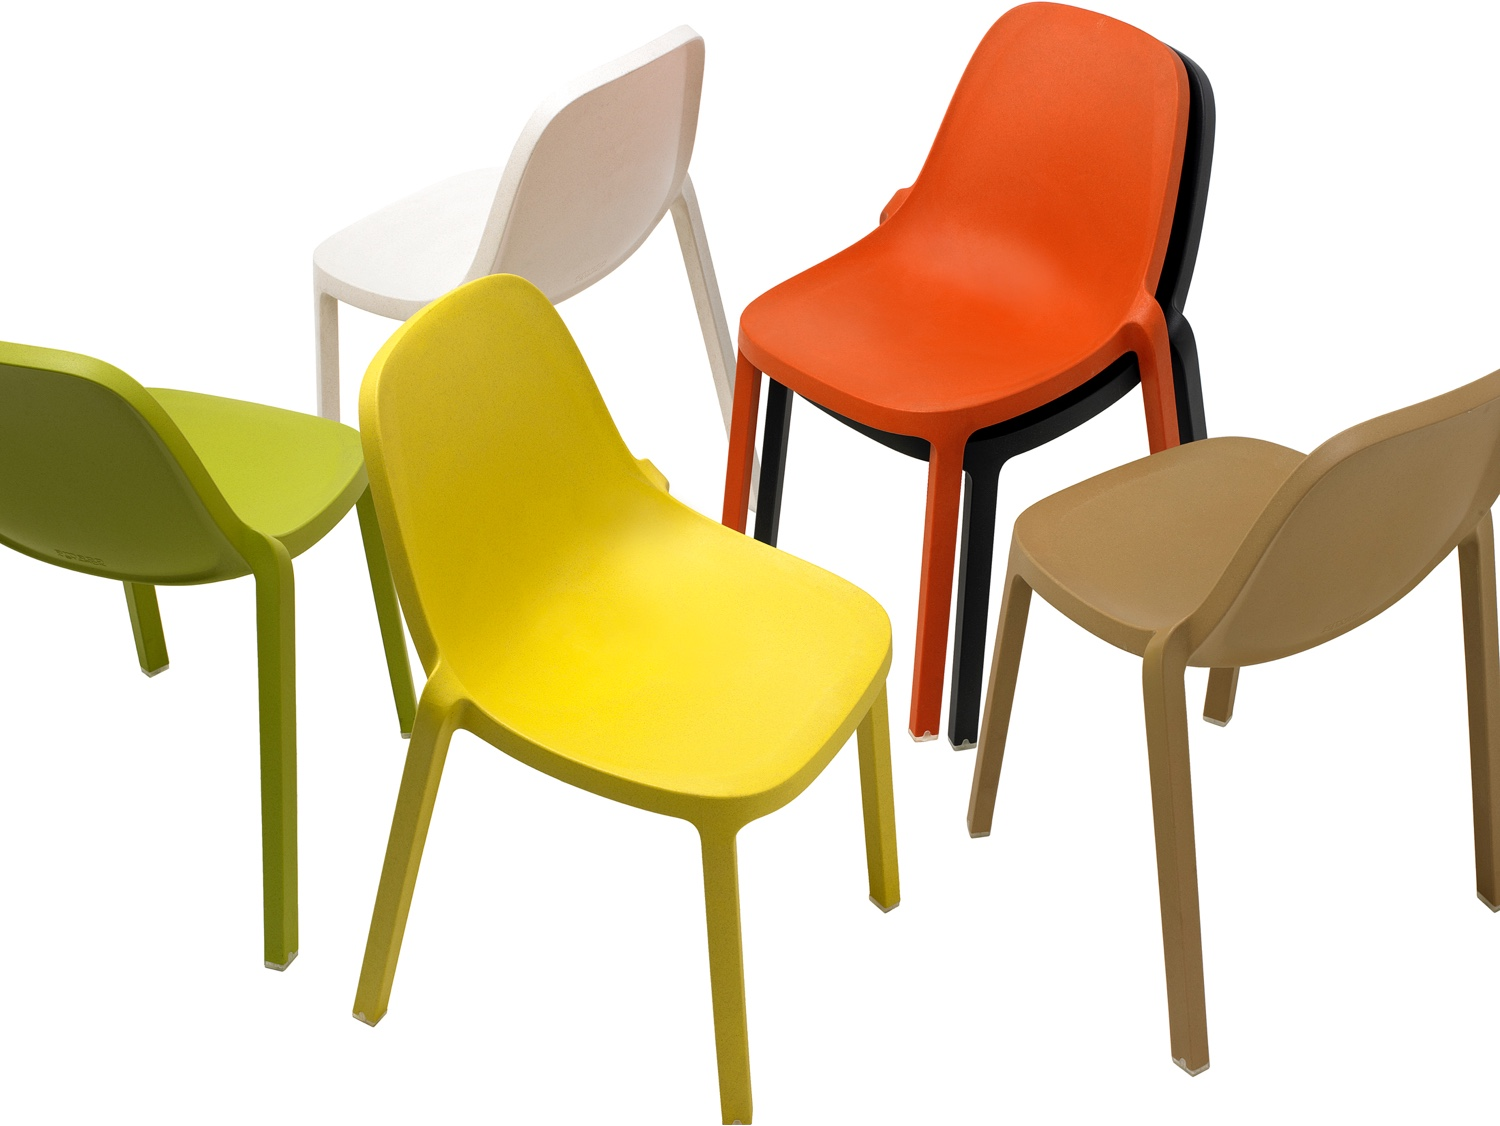 The Broom chair. Image courtesy of Emeco.